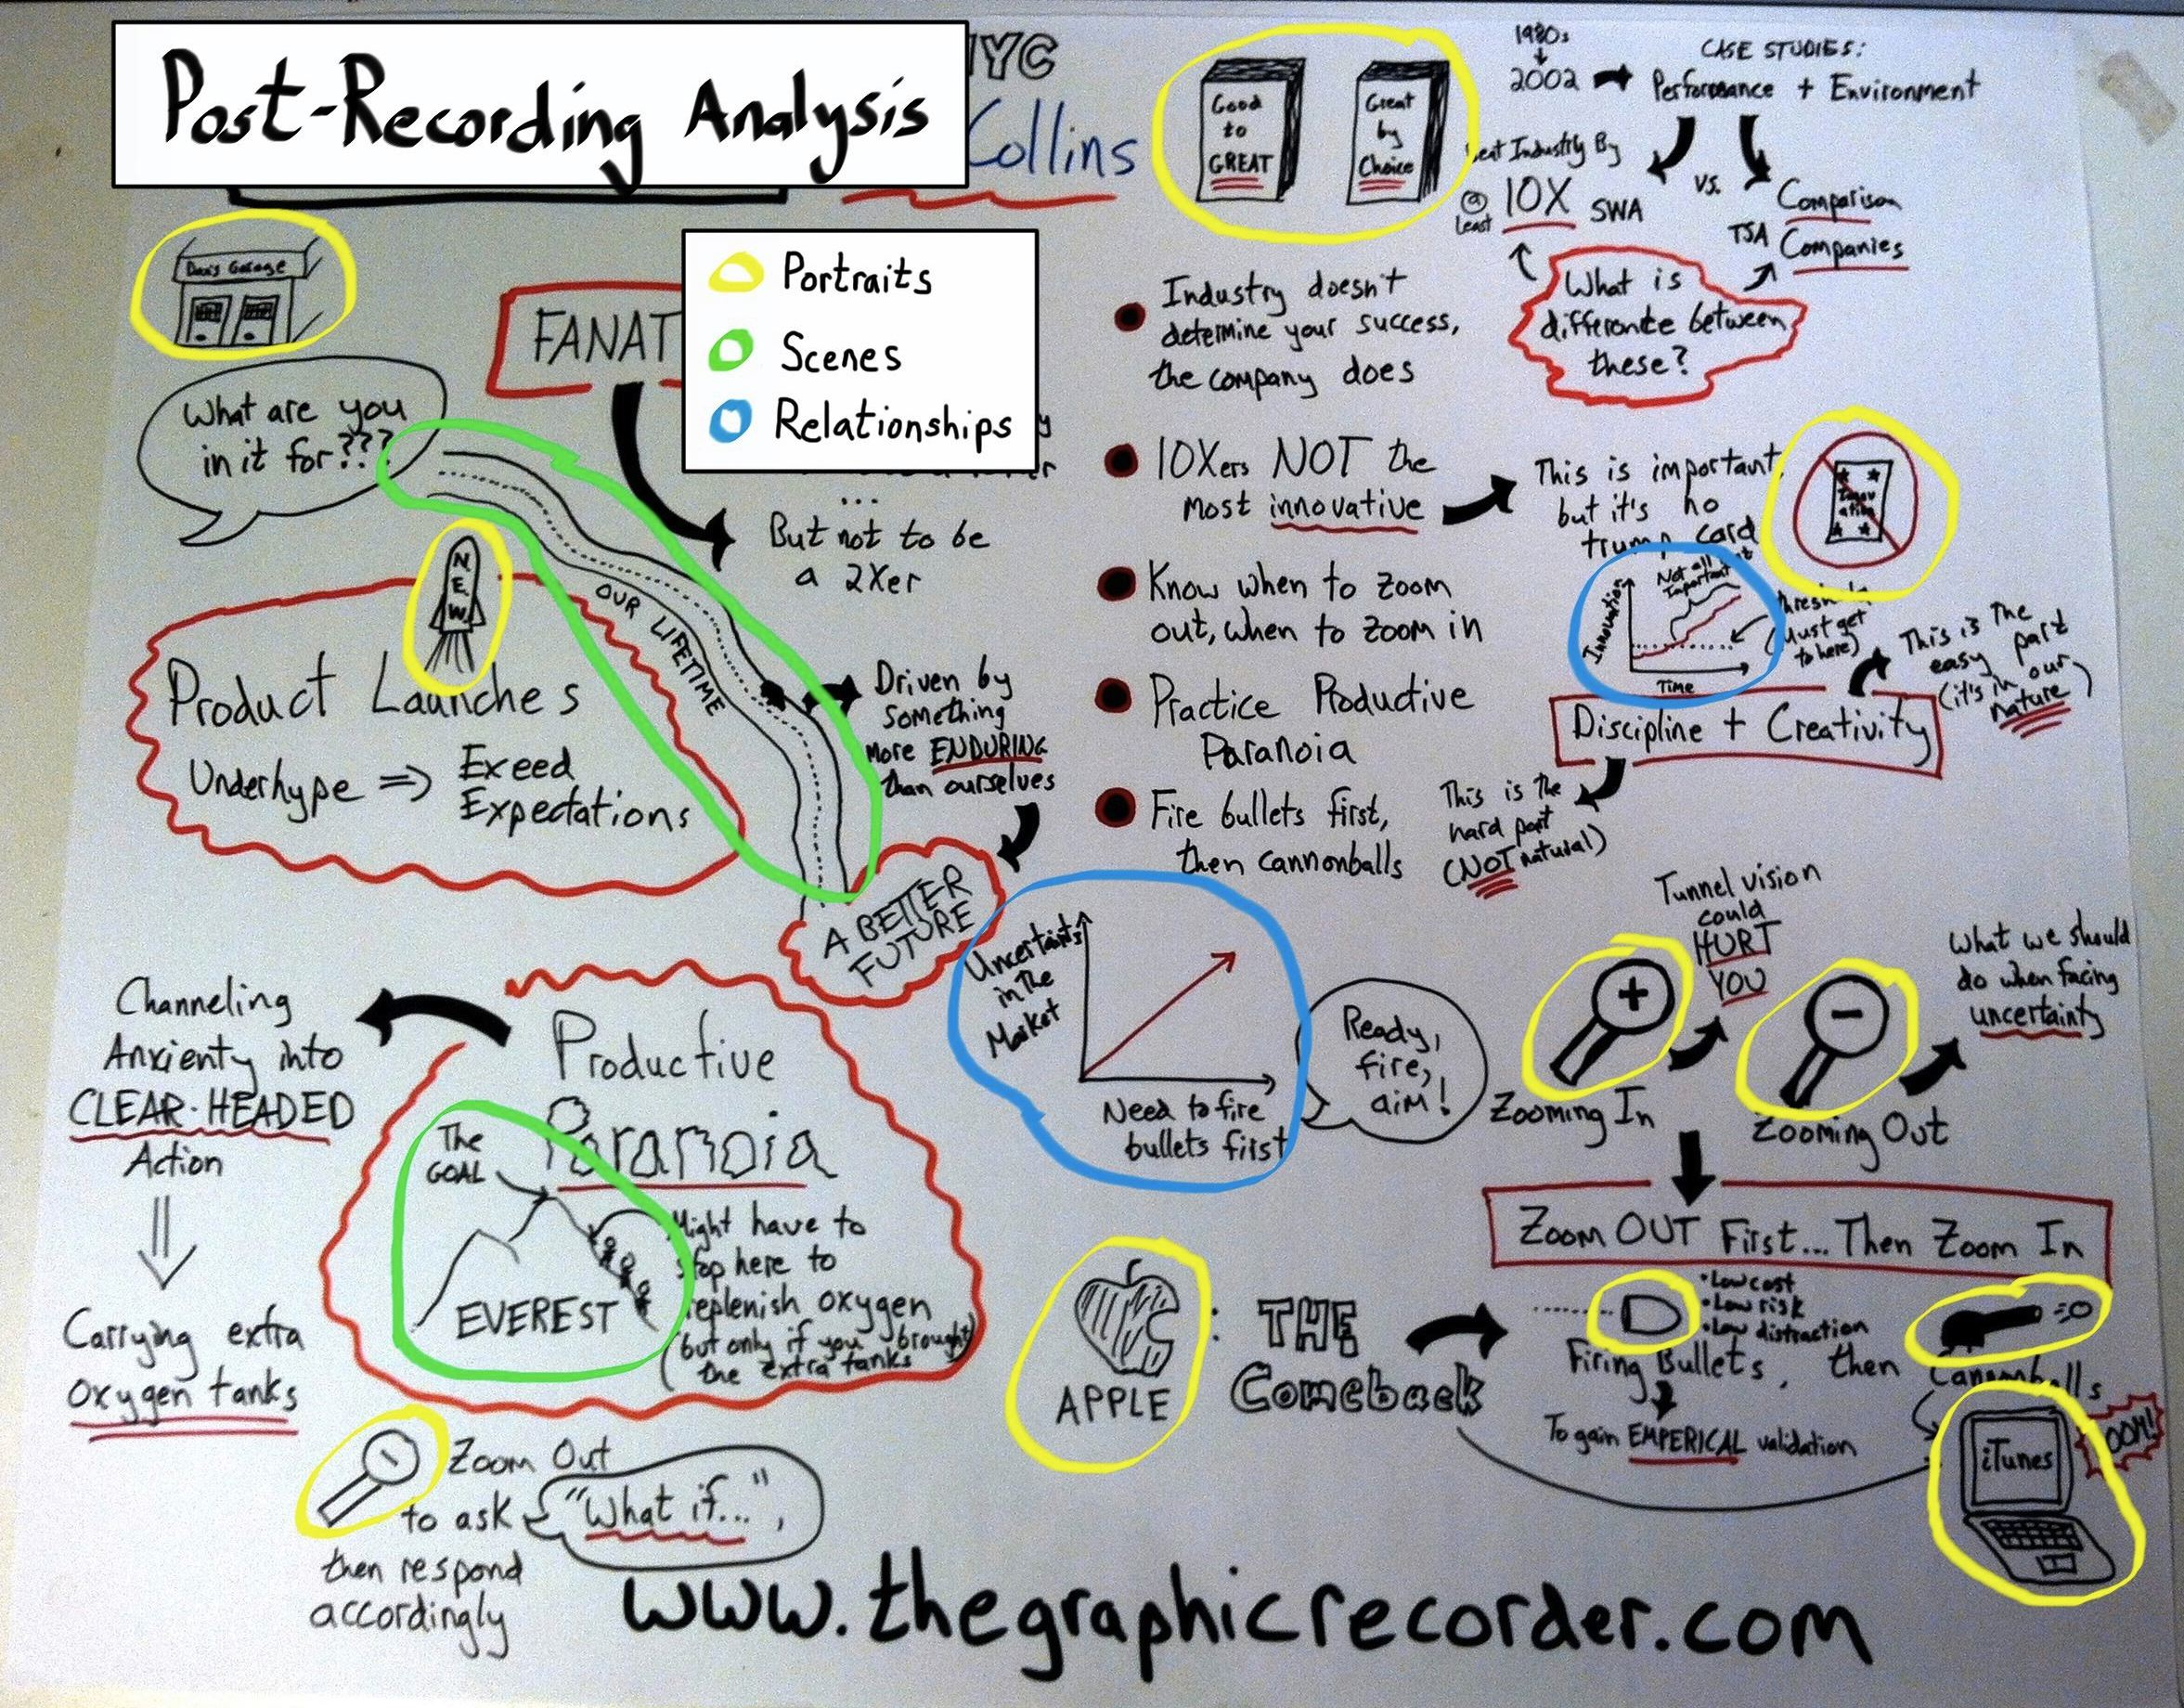 The graphic recorder post-recording analysis dan pink office hours jim collins vivid grammar graph dan roam